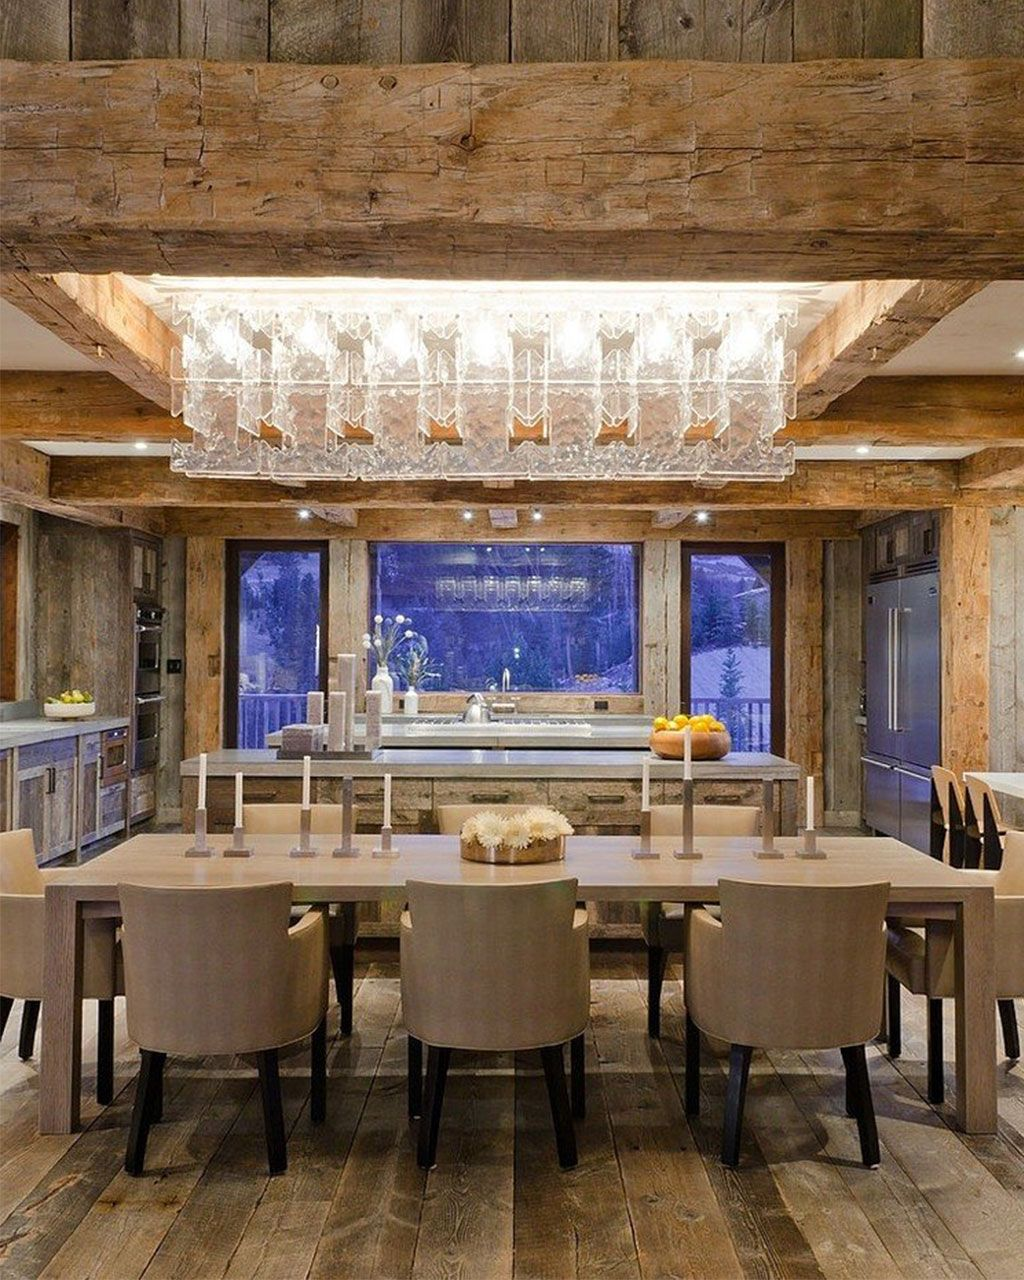 Modern rustic homes interior - Fabulous Dining Room Area And Kitchen In This Modern Rustic Lodge Casual Meets Elegant